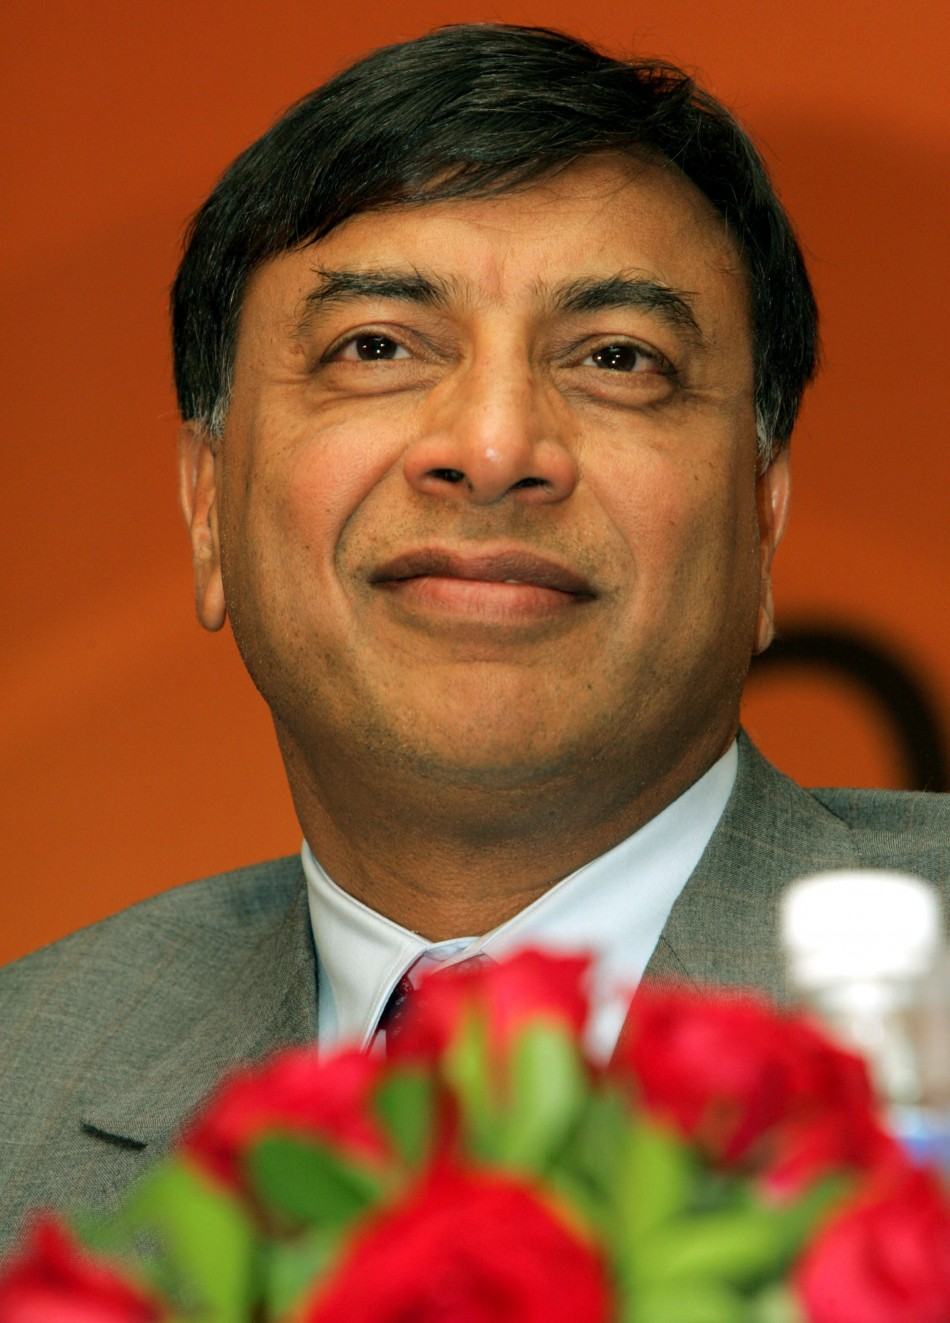 6.Lakshmi Mittal - India